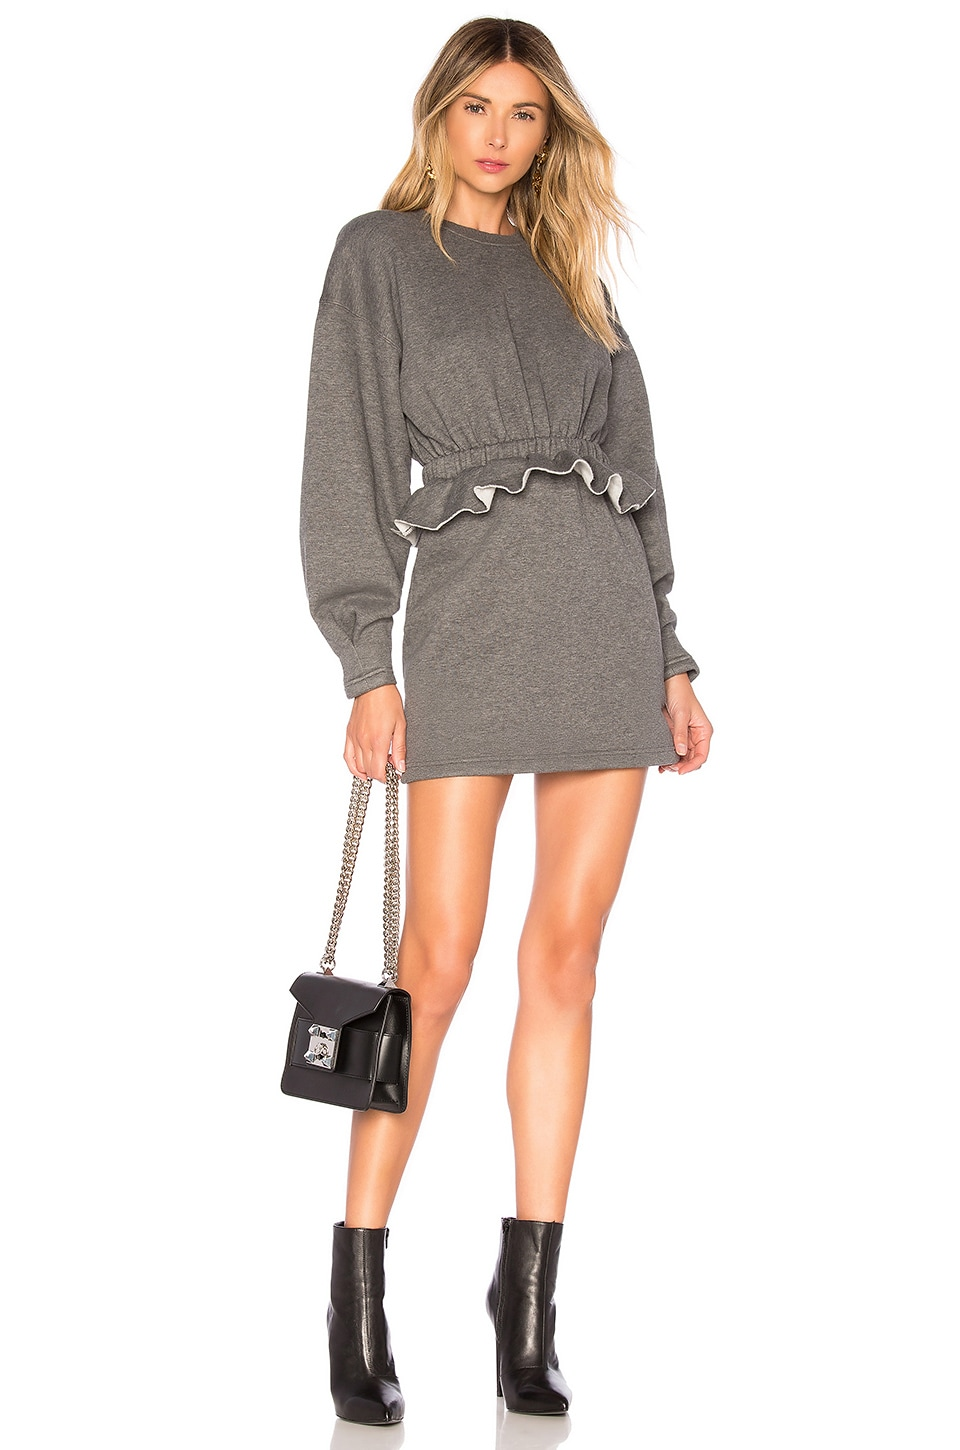 The Jesse Mini Dress